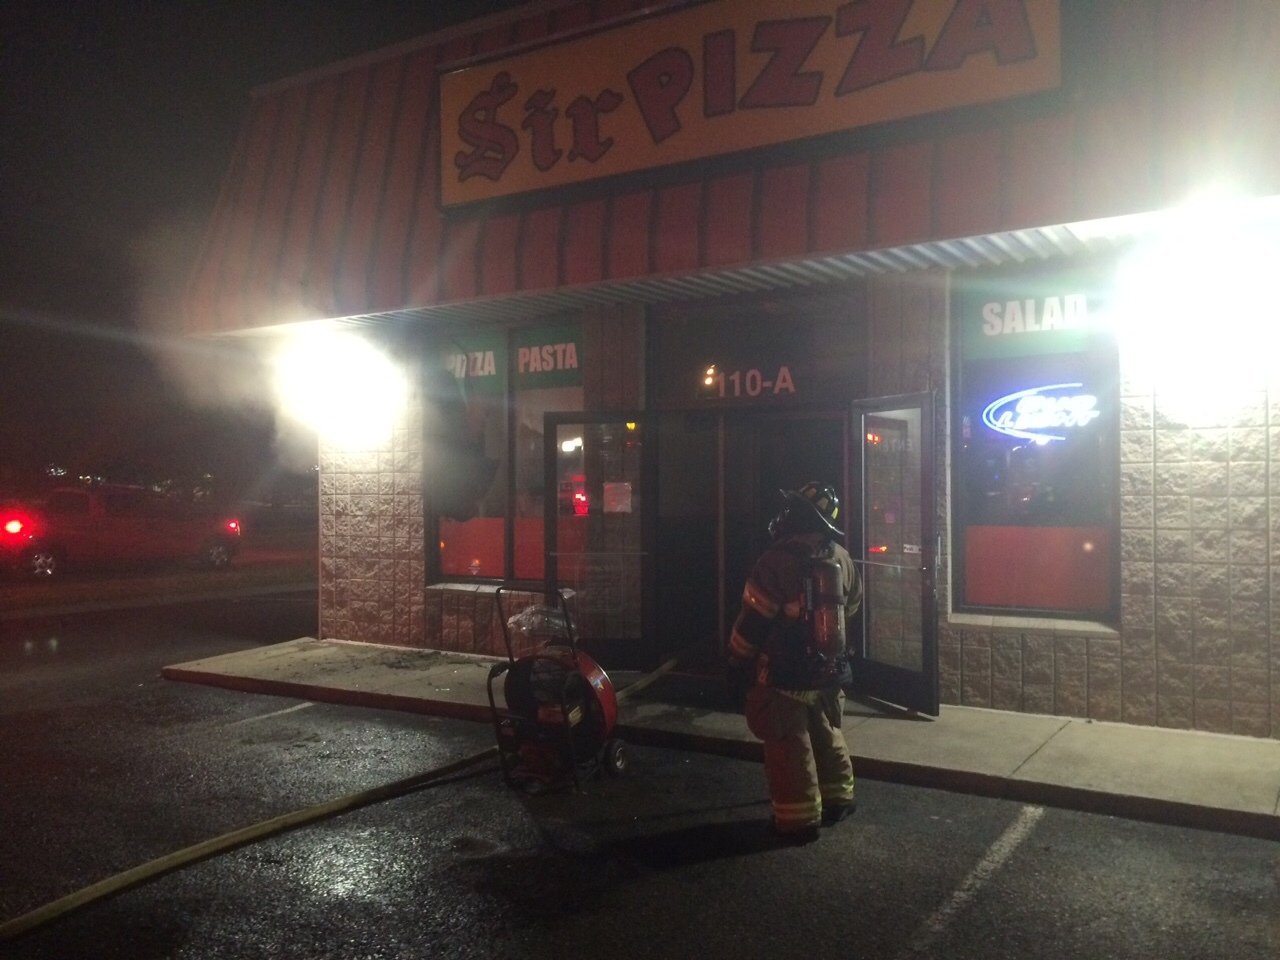 Fire at Sir Pizza in the Barfield Area